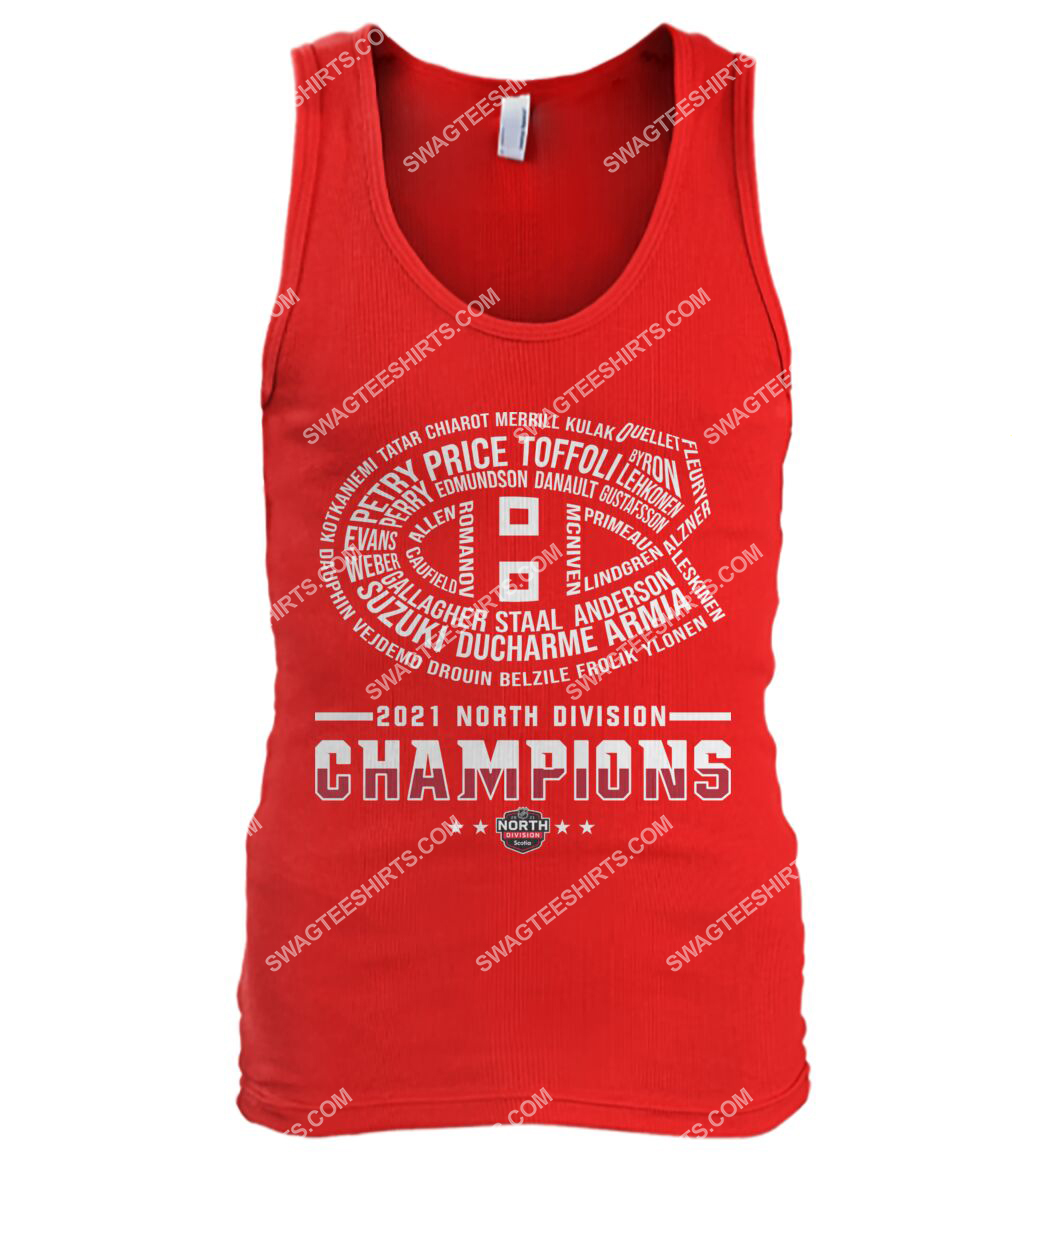 montreal canadiens 2021 north division champions tank top 1